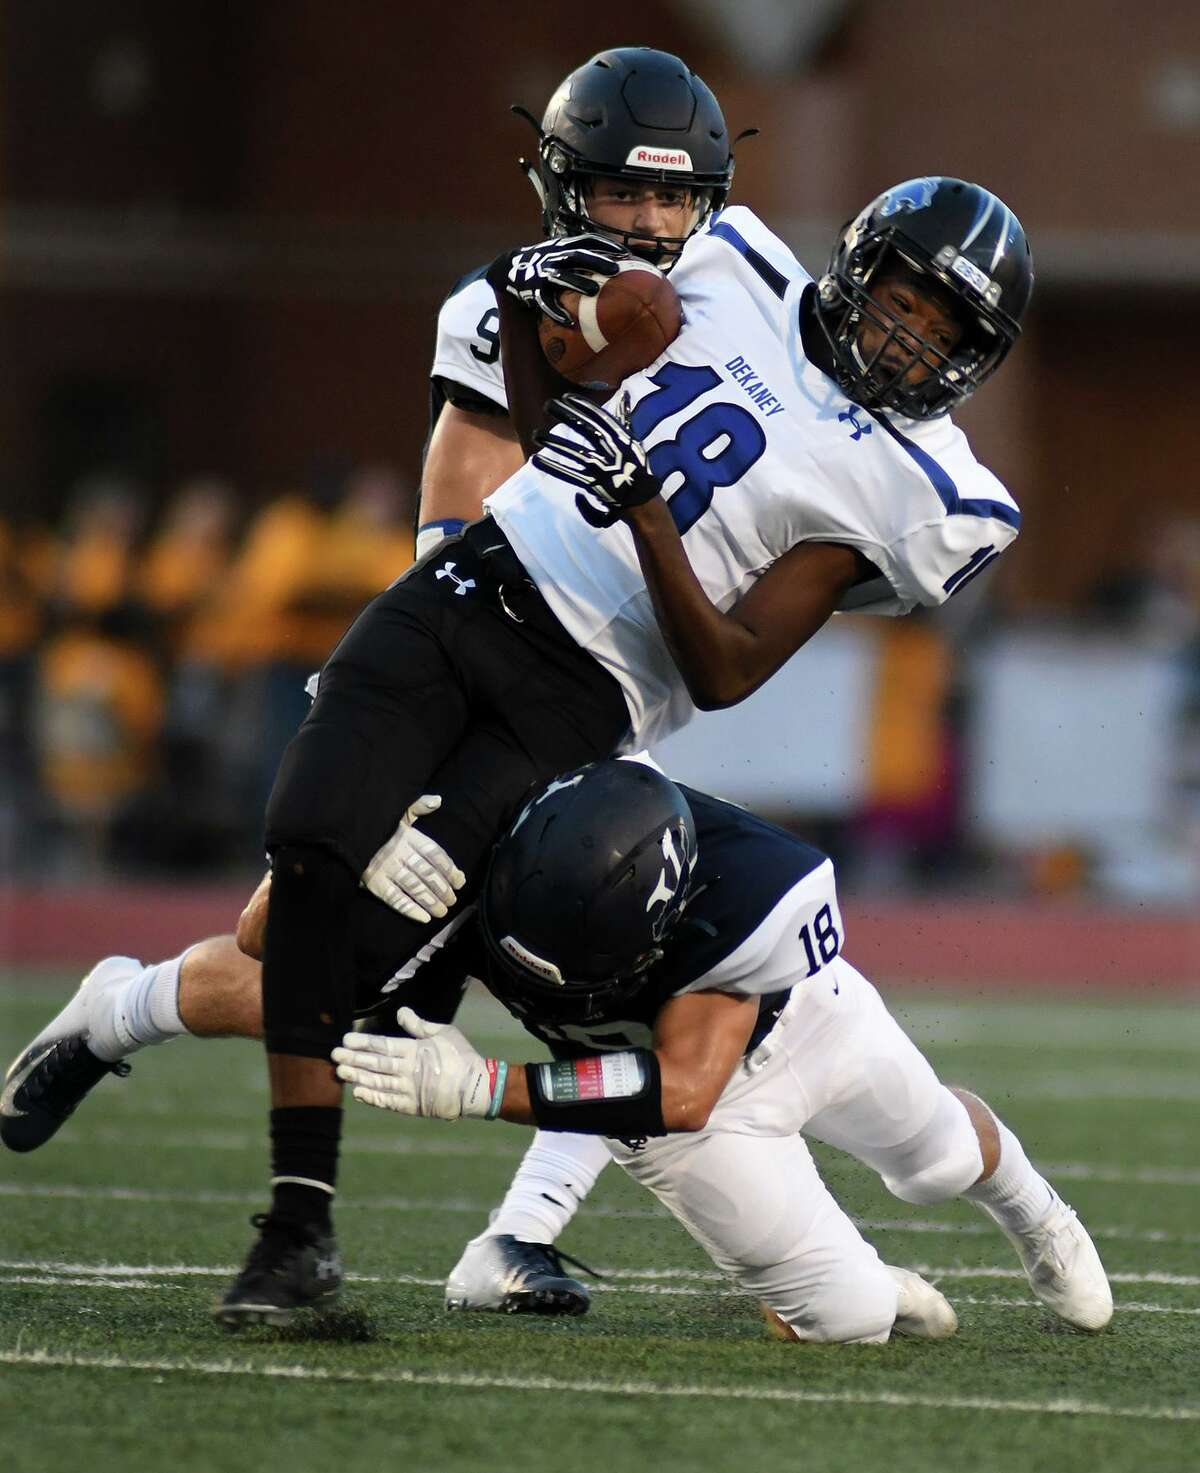 The Dekaney Wildcats (1-0) started the 2019 season with a 35-7 win over Heights, Aug. 30, at Delmar Stadium.